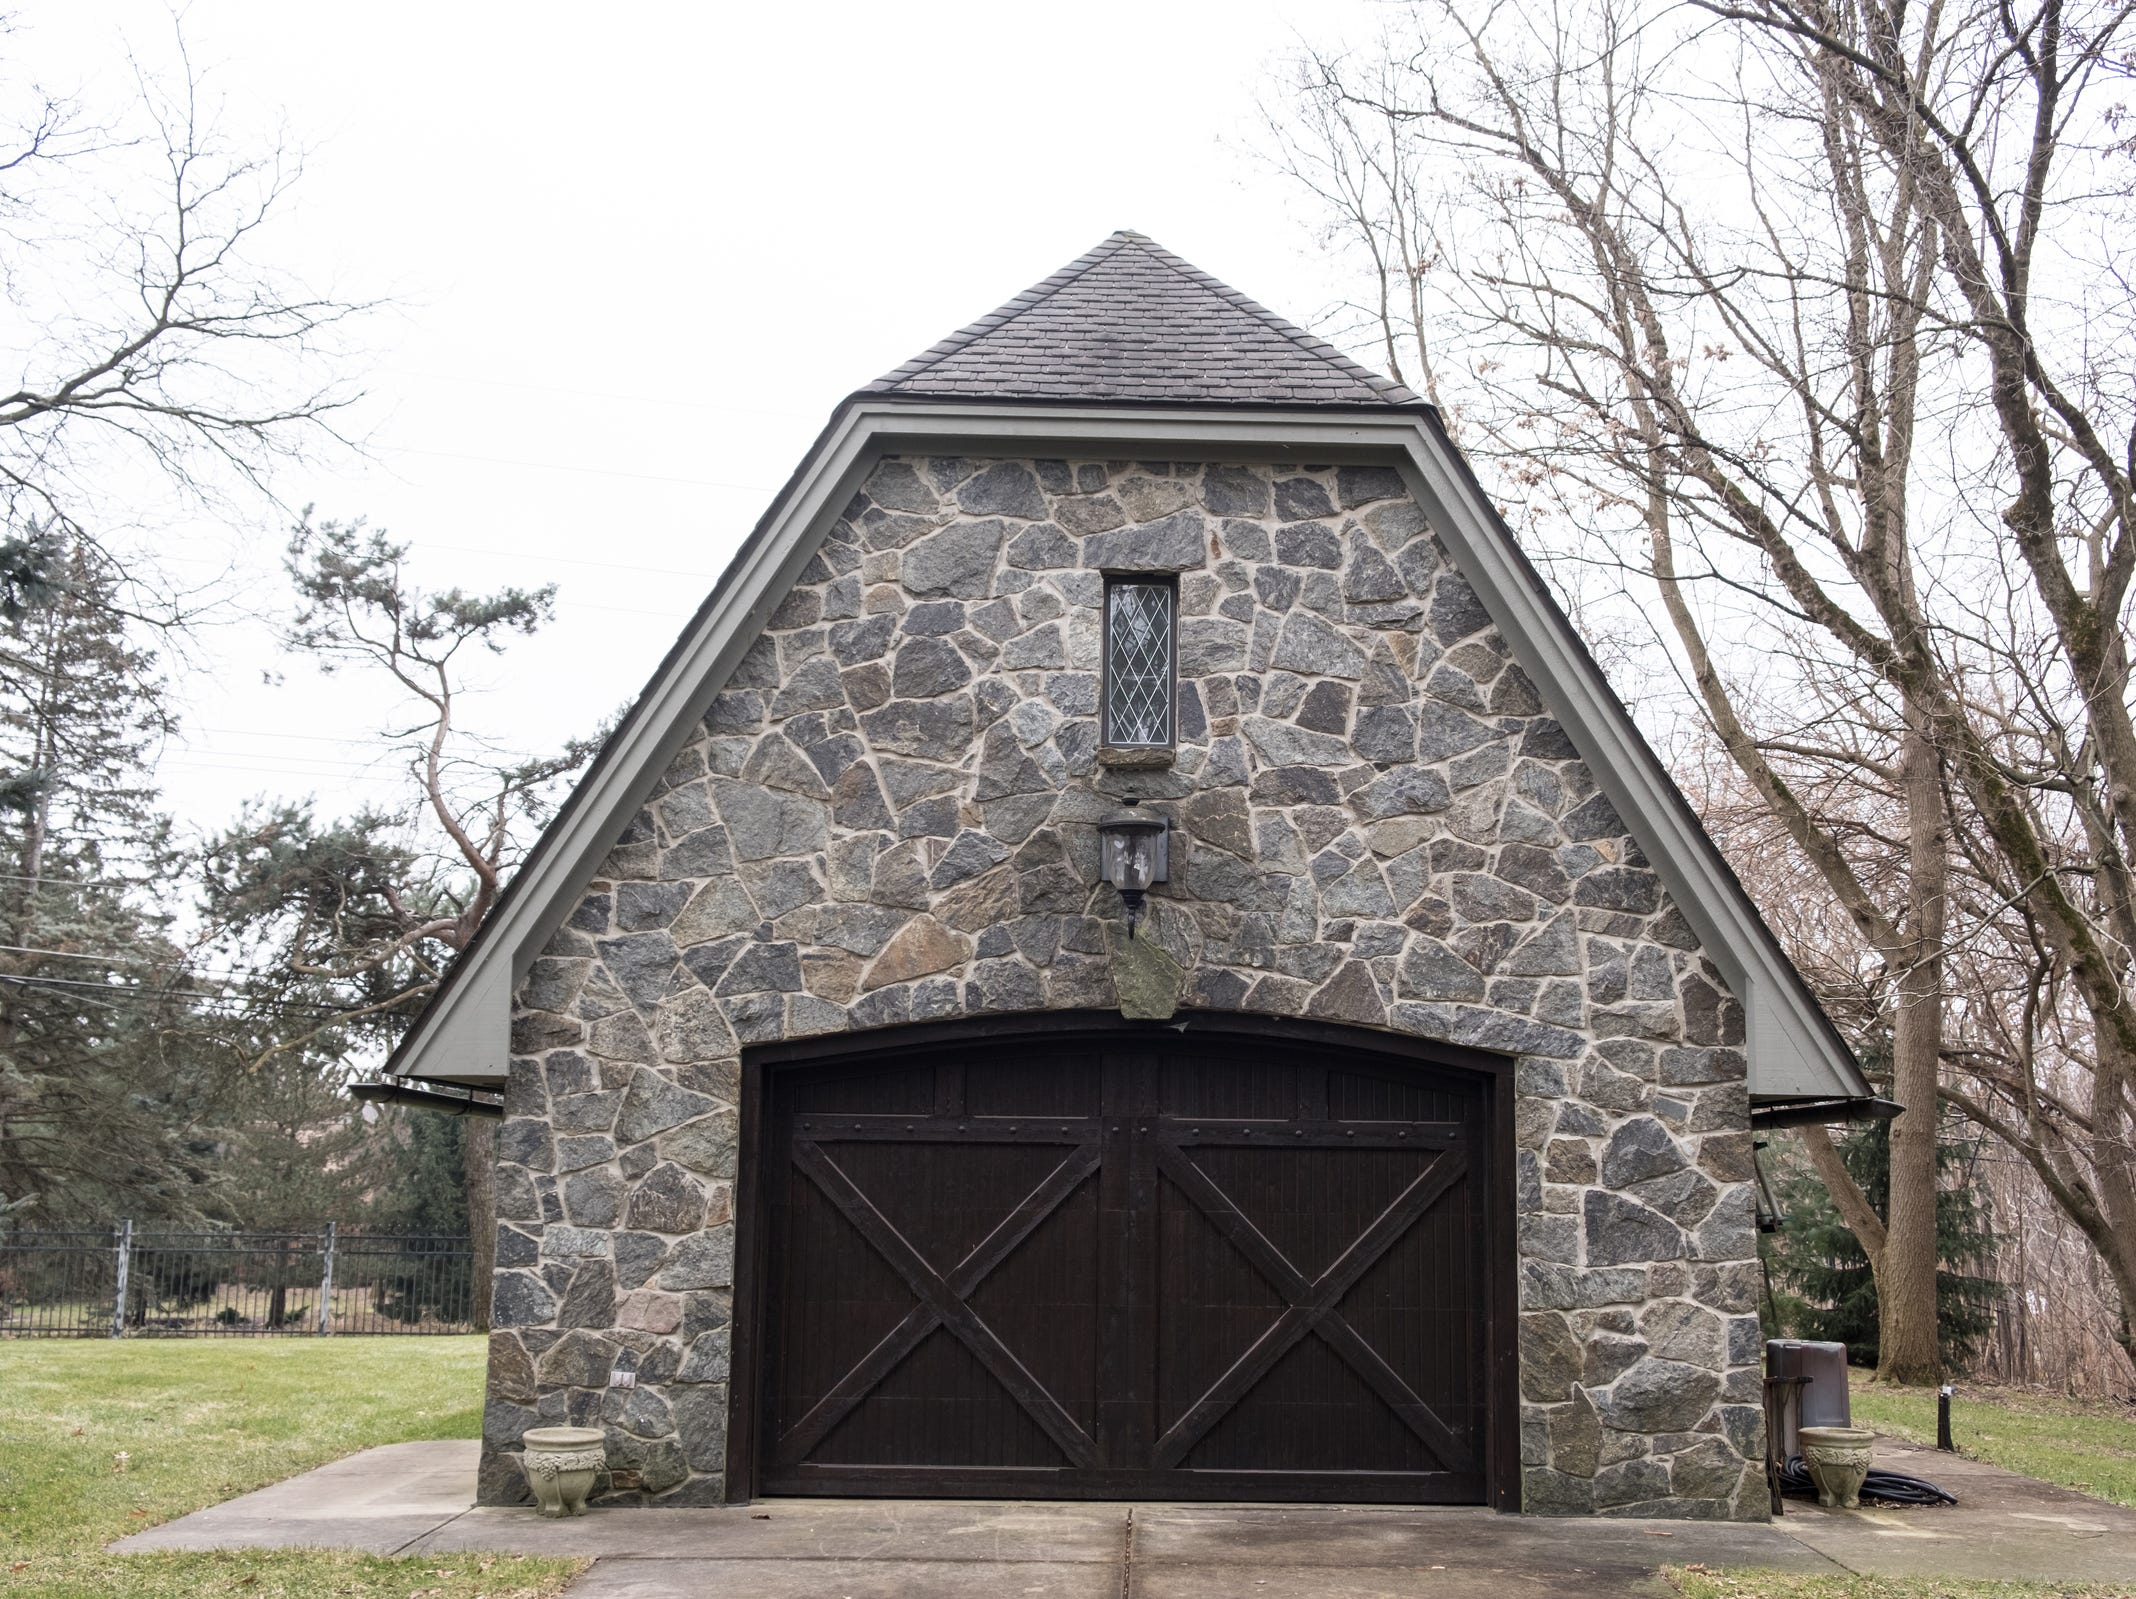 Blue mountain granite covers the front of a detached garage of the 5,000 sq. ft. 3-bedroom home in Washington Township.